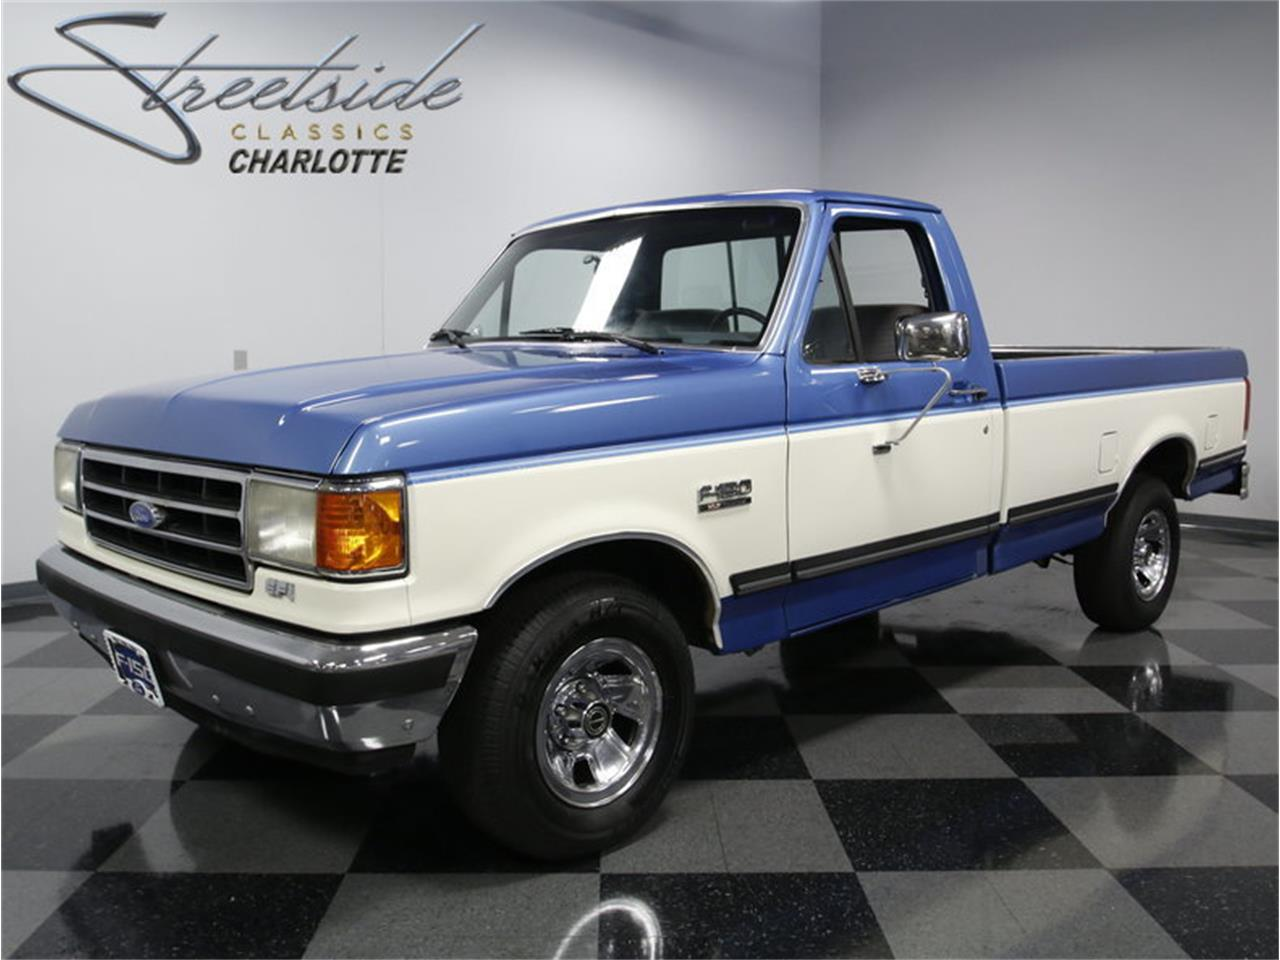 Large picture of 1989 f150 lld6